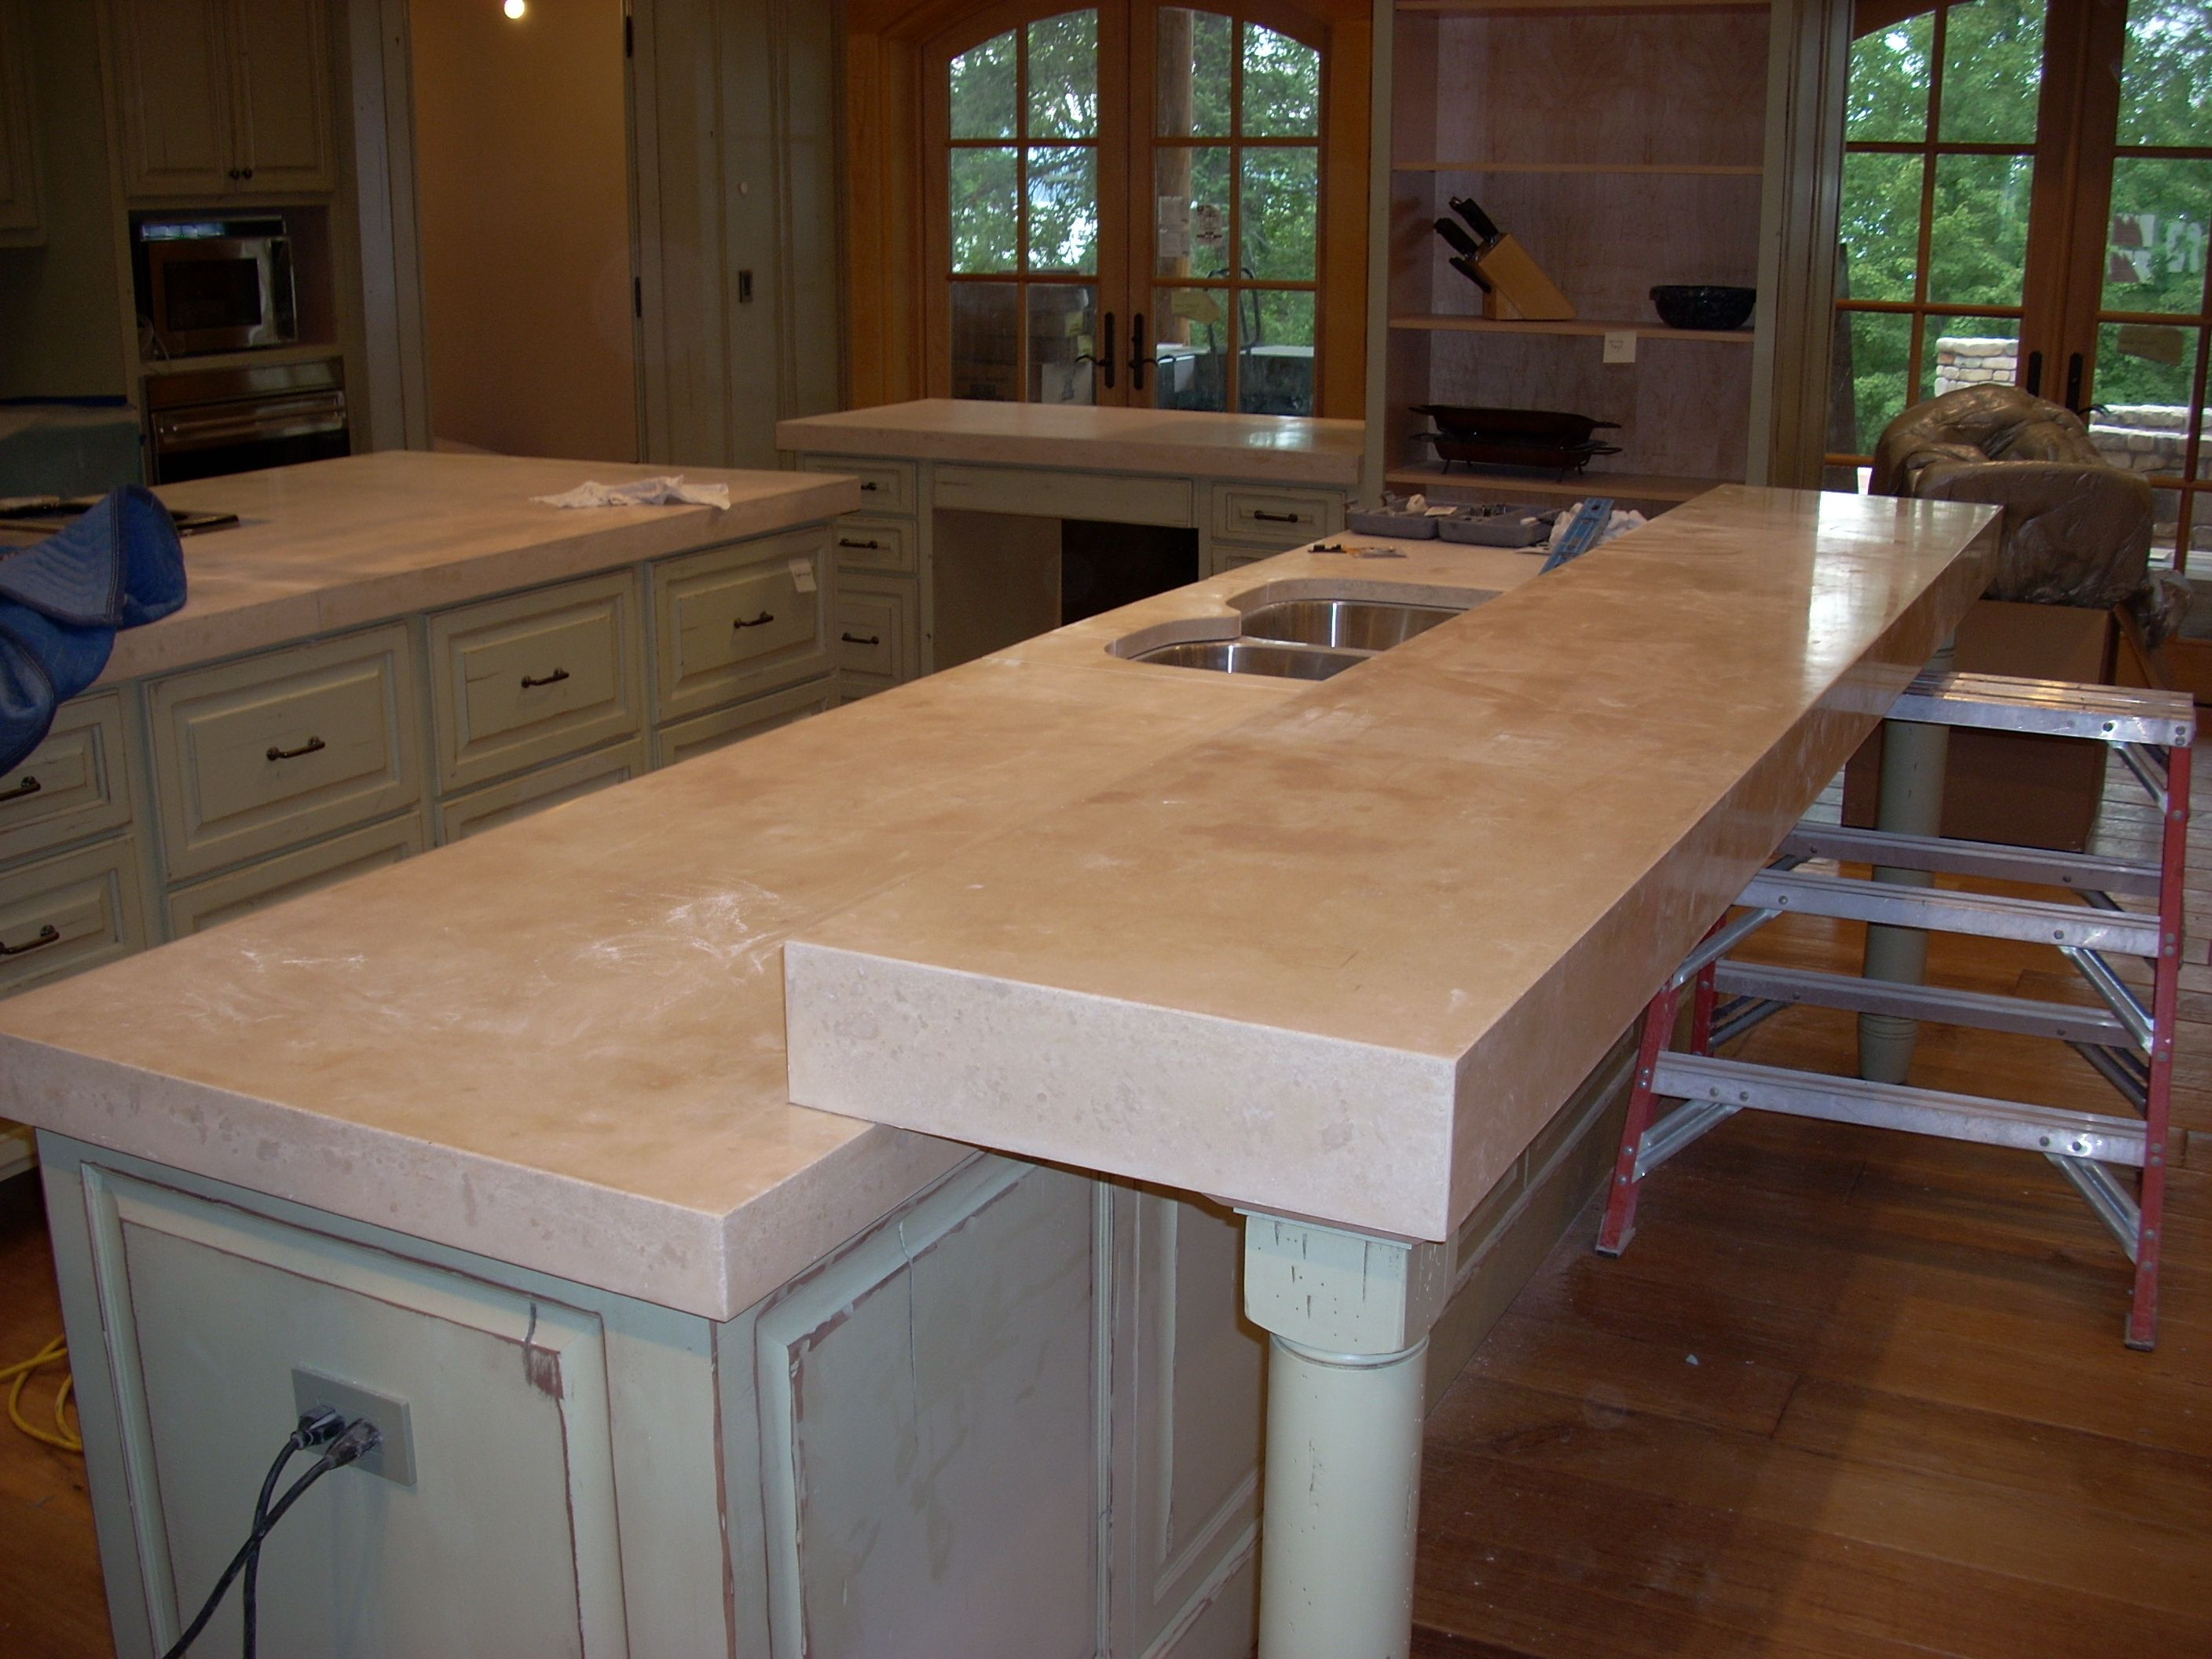 Uncategorized Countertops For Kitchen concrete countertops kitchen or outdoor nw concreteworks inc